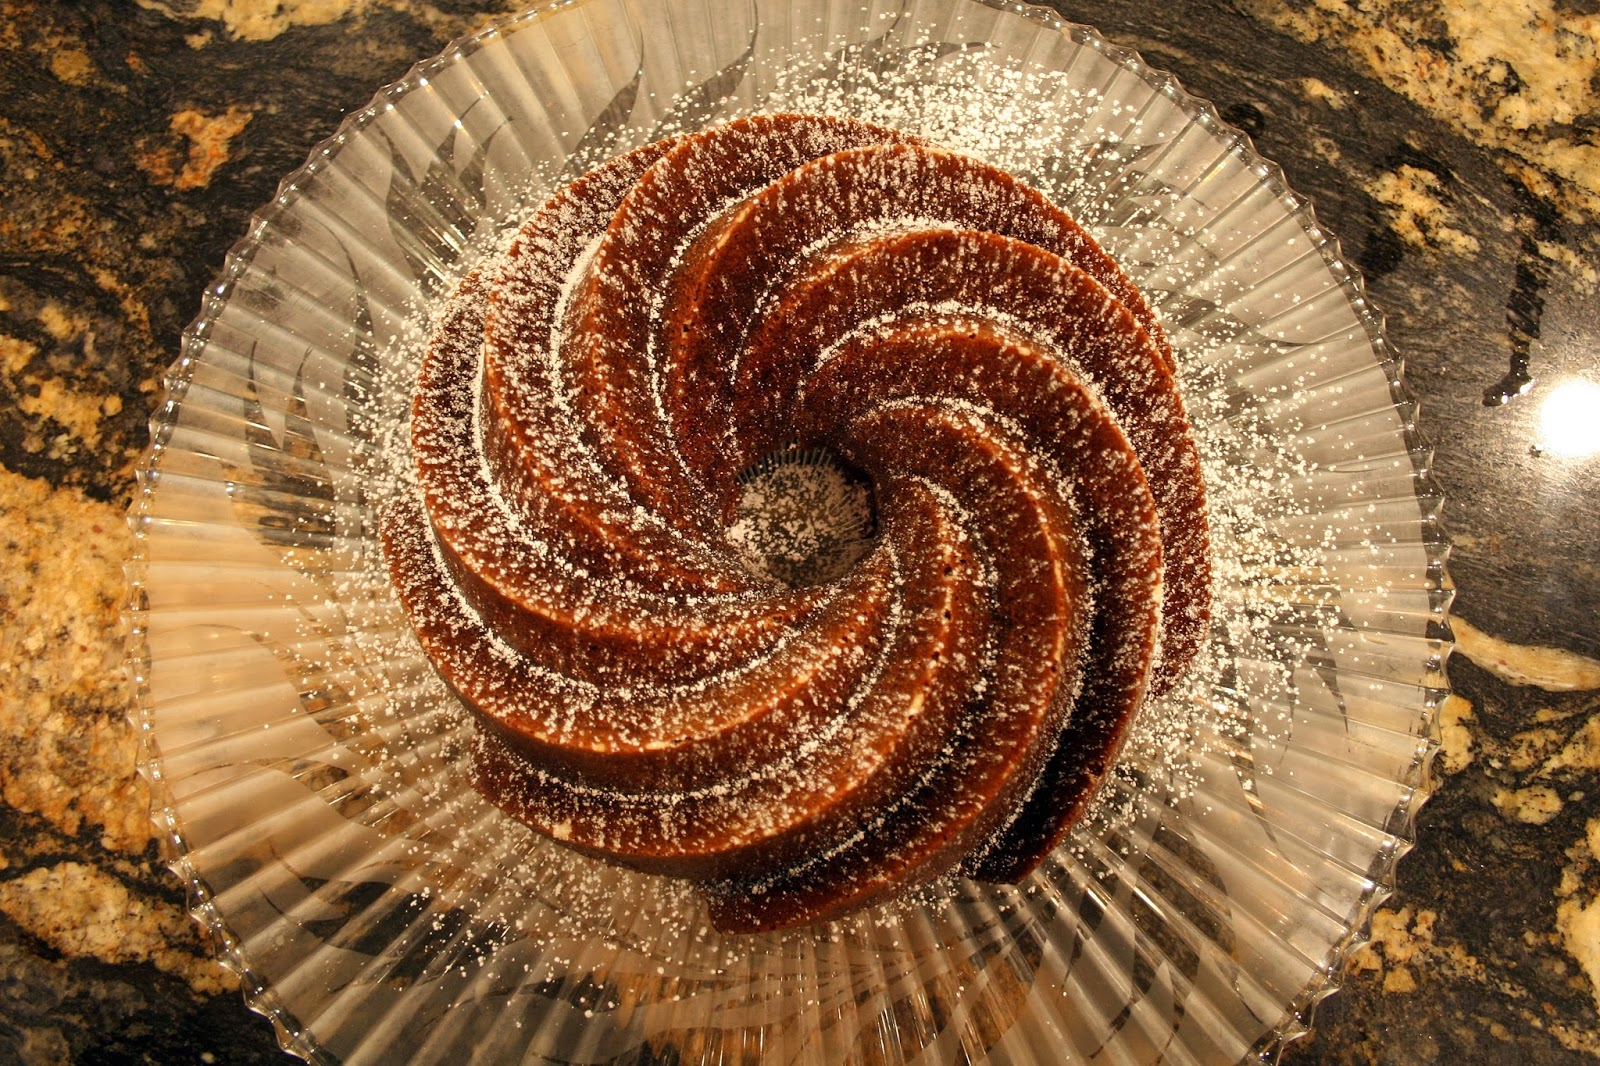 When Should I Take My Cake Out Of Bundt Pan